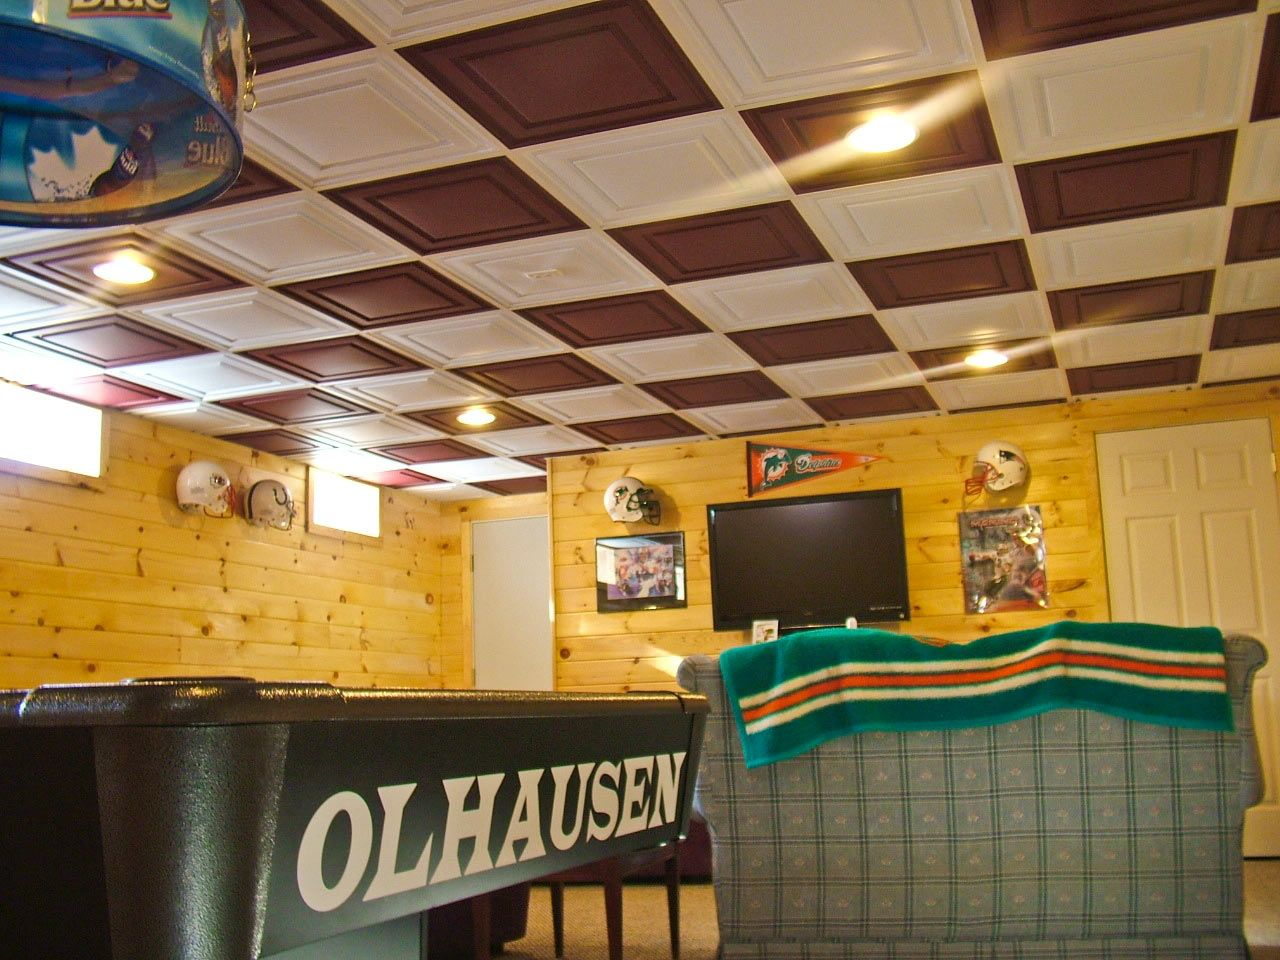 Ultimate Man Cave Check Out These Pvc Ceiling Tiles They Transform The Drop Grid In This Basement Not O Basement Flooring Basement Remodeling Basement Decor